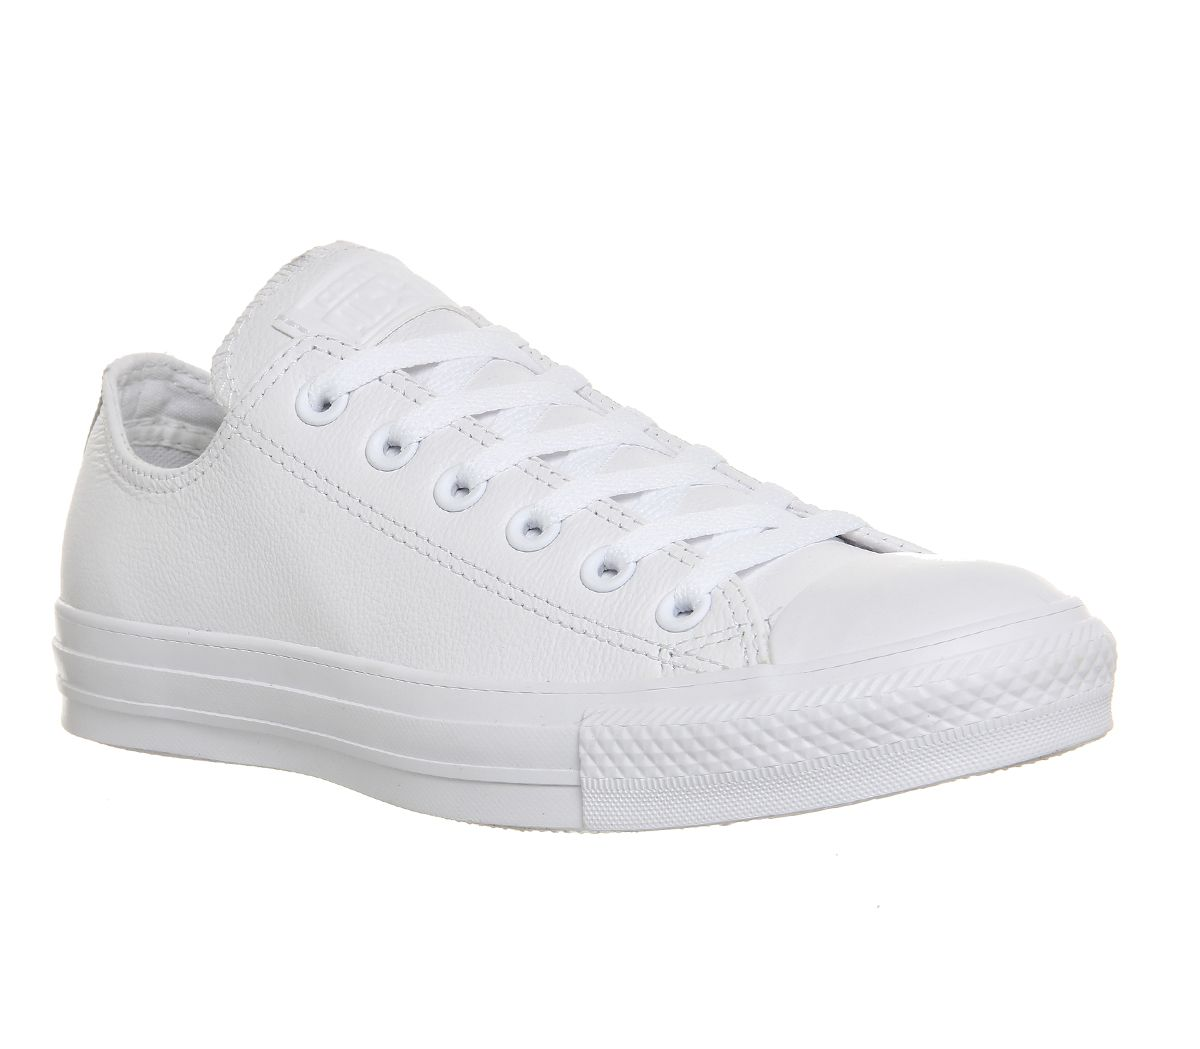 7c41ada643ea Converse All Star Low Leather White Mono Leather - Unisex Sports